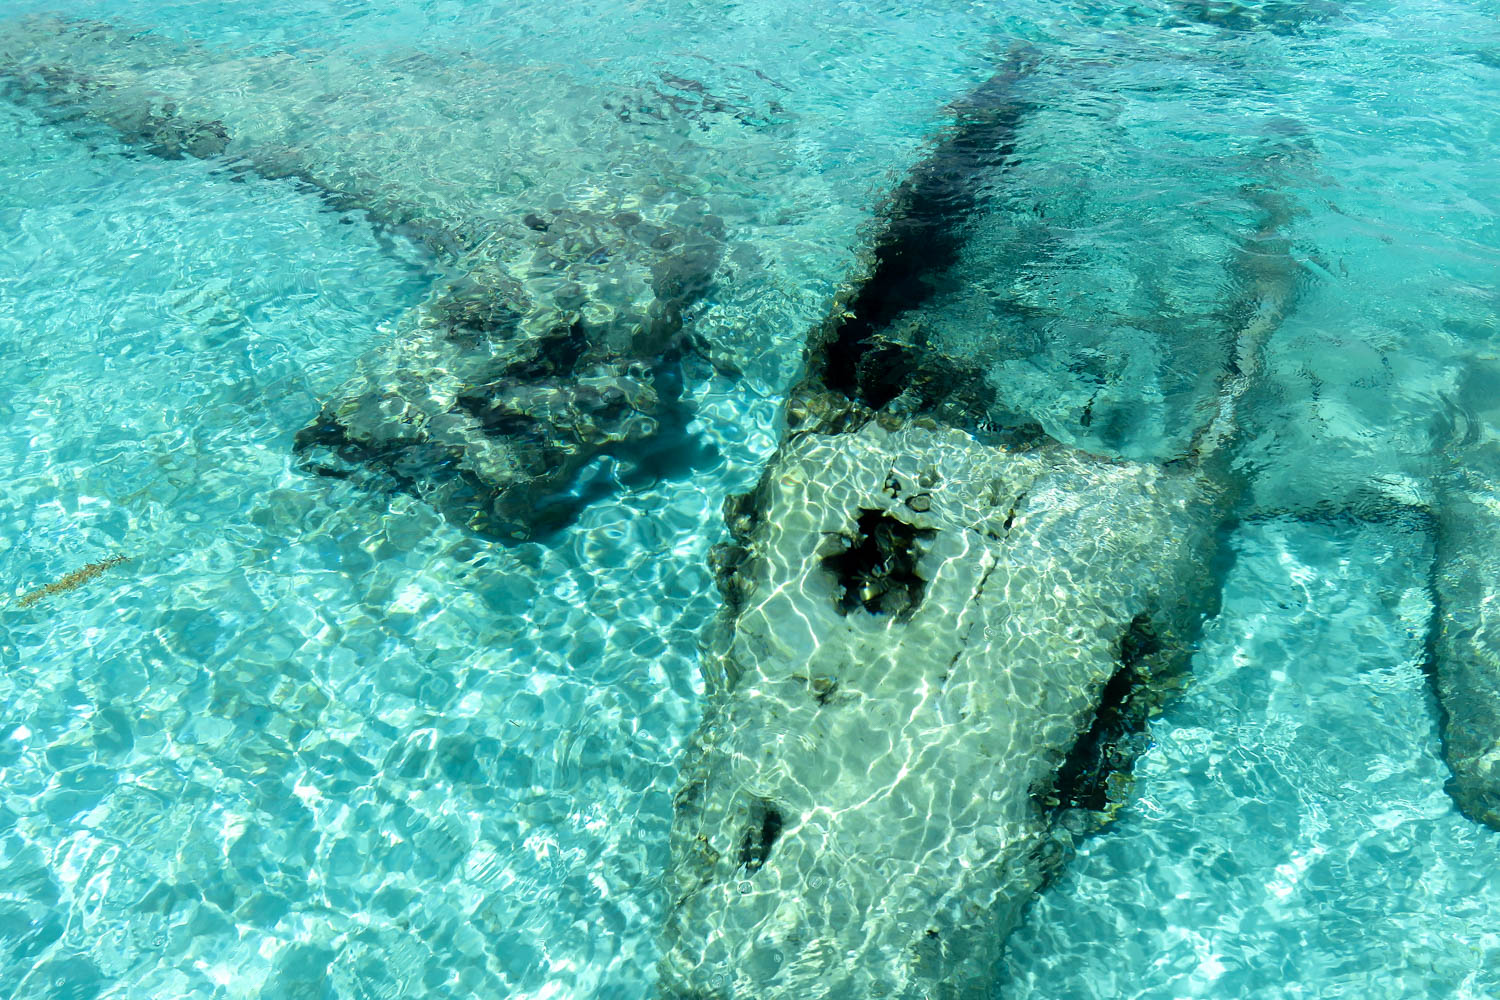 A Bahamas Plane crash in the 1970s during the Pablo Escobar drug trafficking years. This Bahamas underwater plane is at Staniel Cay in the Exumas in Bahamas.